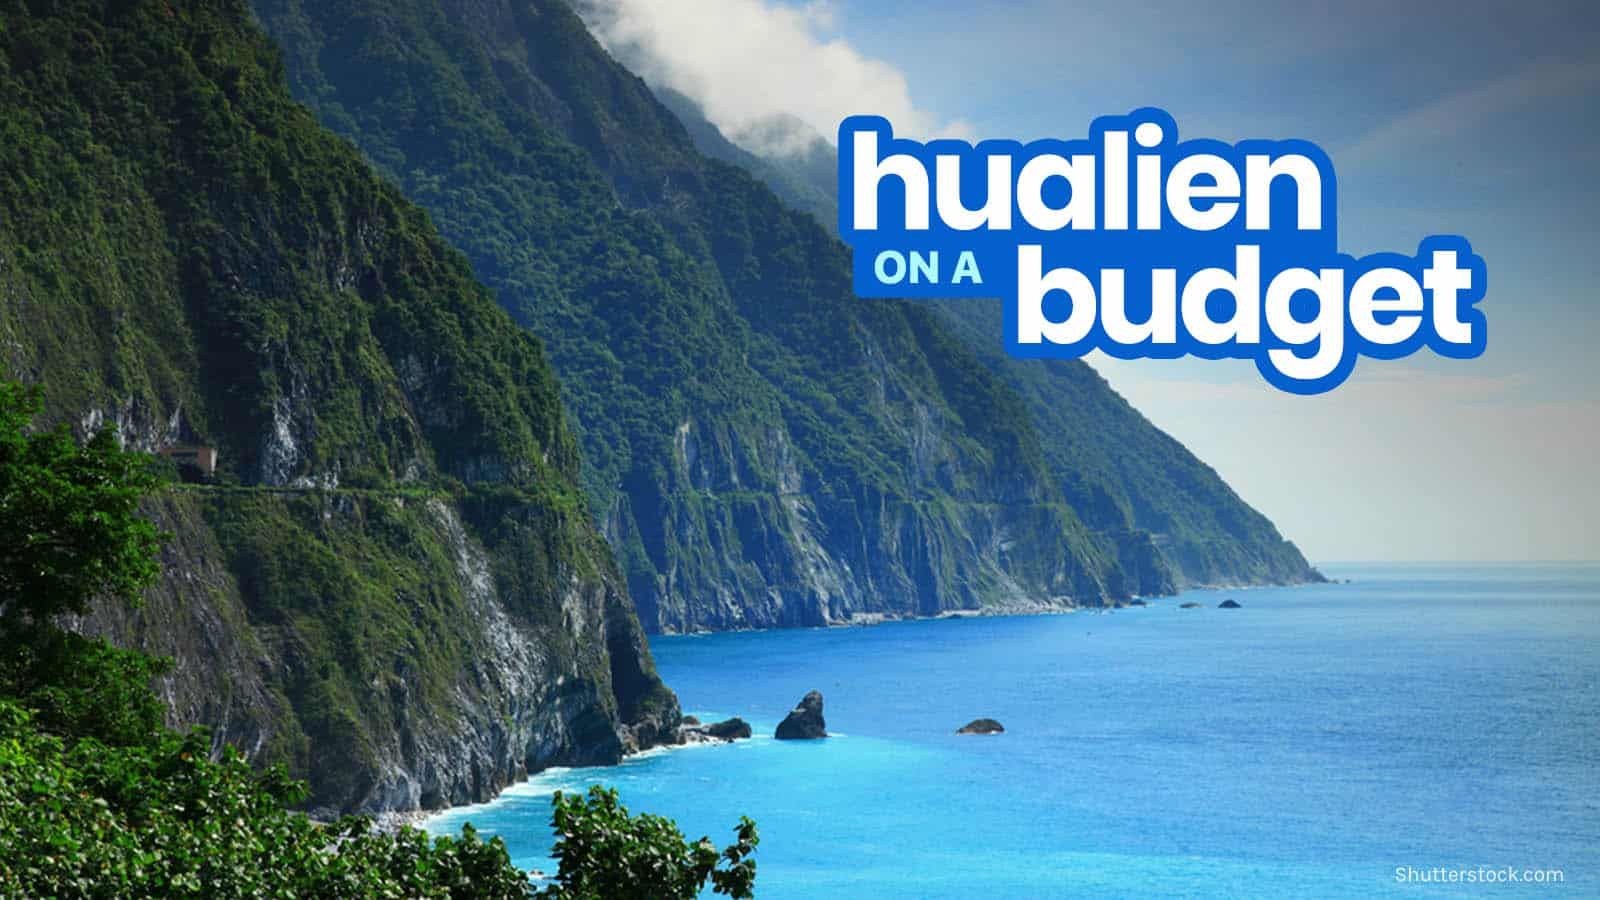 New! HUALIEN TAIWAN Travel Guide: Itinerary, Budget & Things to Do 2018